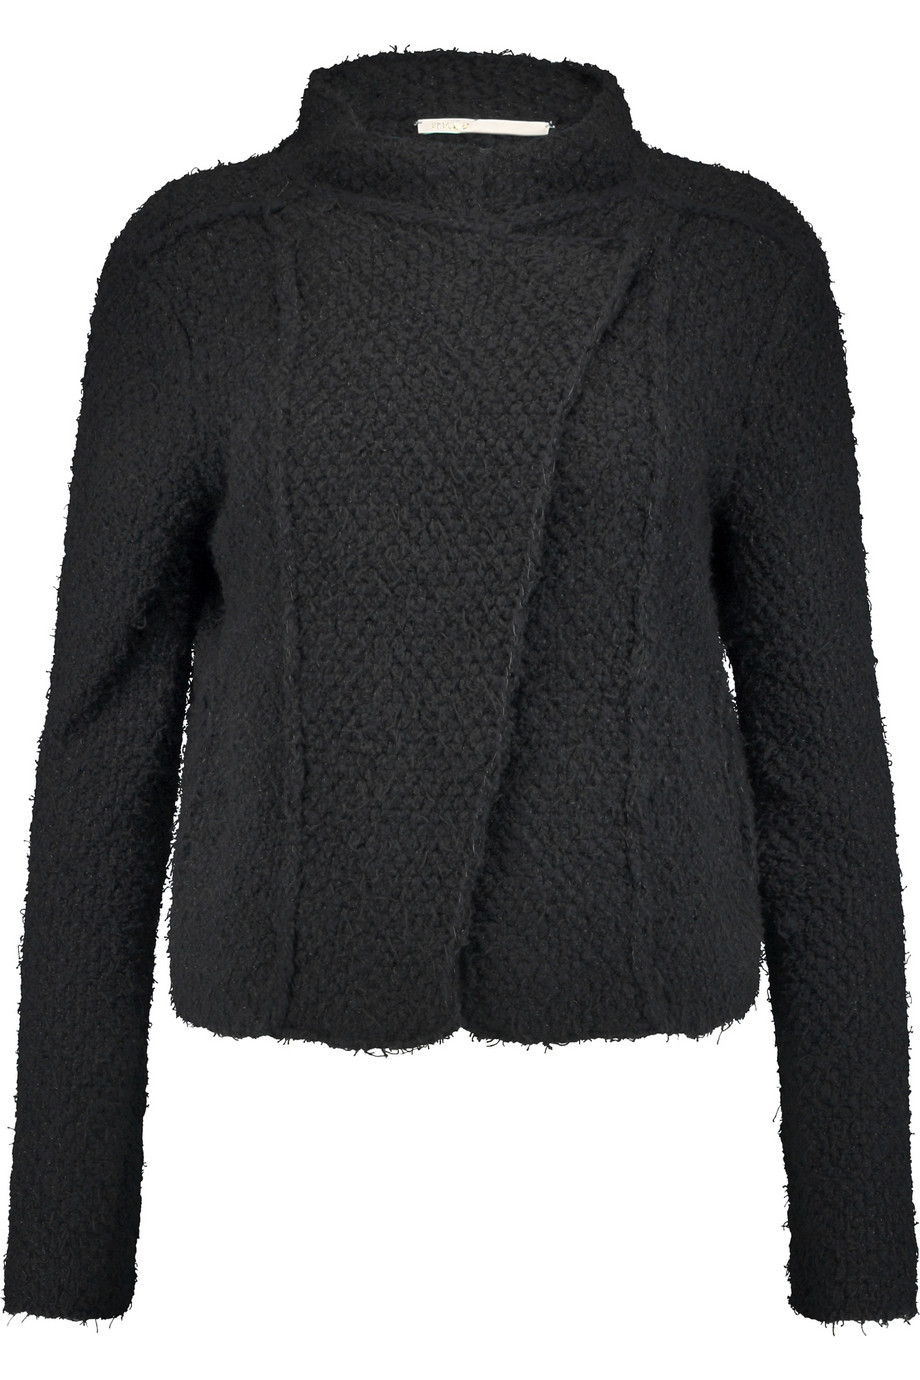 Macao Knitted Cotton Blend Jacket Black - collar: asymmetric biker; style: boxy; pattern: herringbone/tweed; predominant colour: black; occasions: casual, creative work; length: standard; fit: straight cut (boxy); fibres: wool - mix; sleeve length: long sleeve; sleeve style: standard; texture group: knits/crochet; collar break: high/illusion of break when open; pattern type: fabric; pattern size: light/subtle; season: s/s 2016; wardrobe: basic